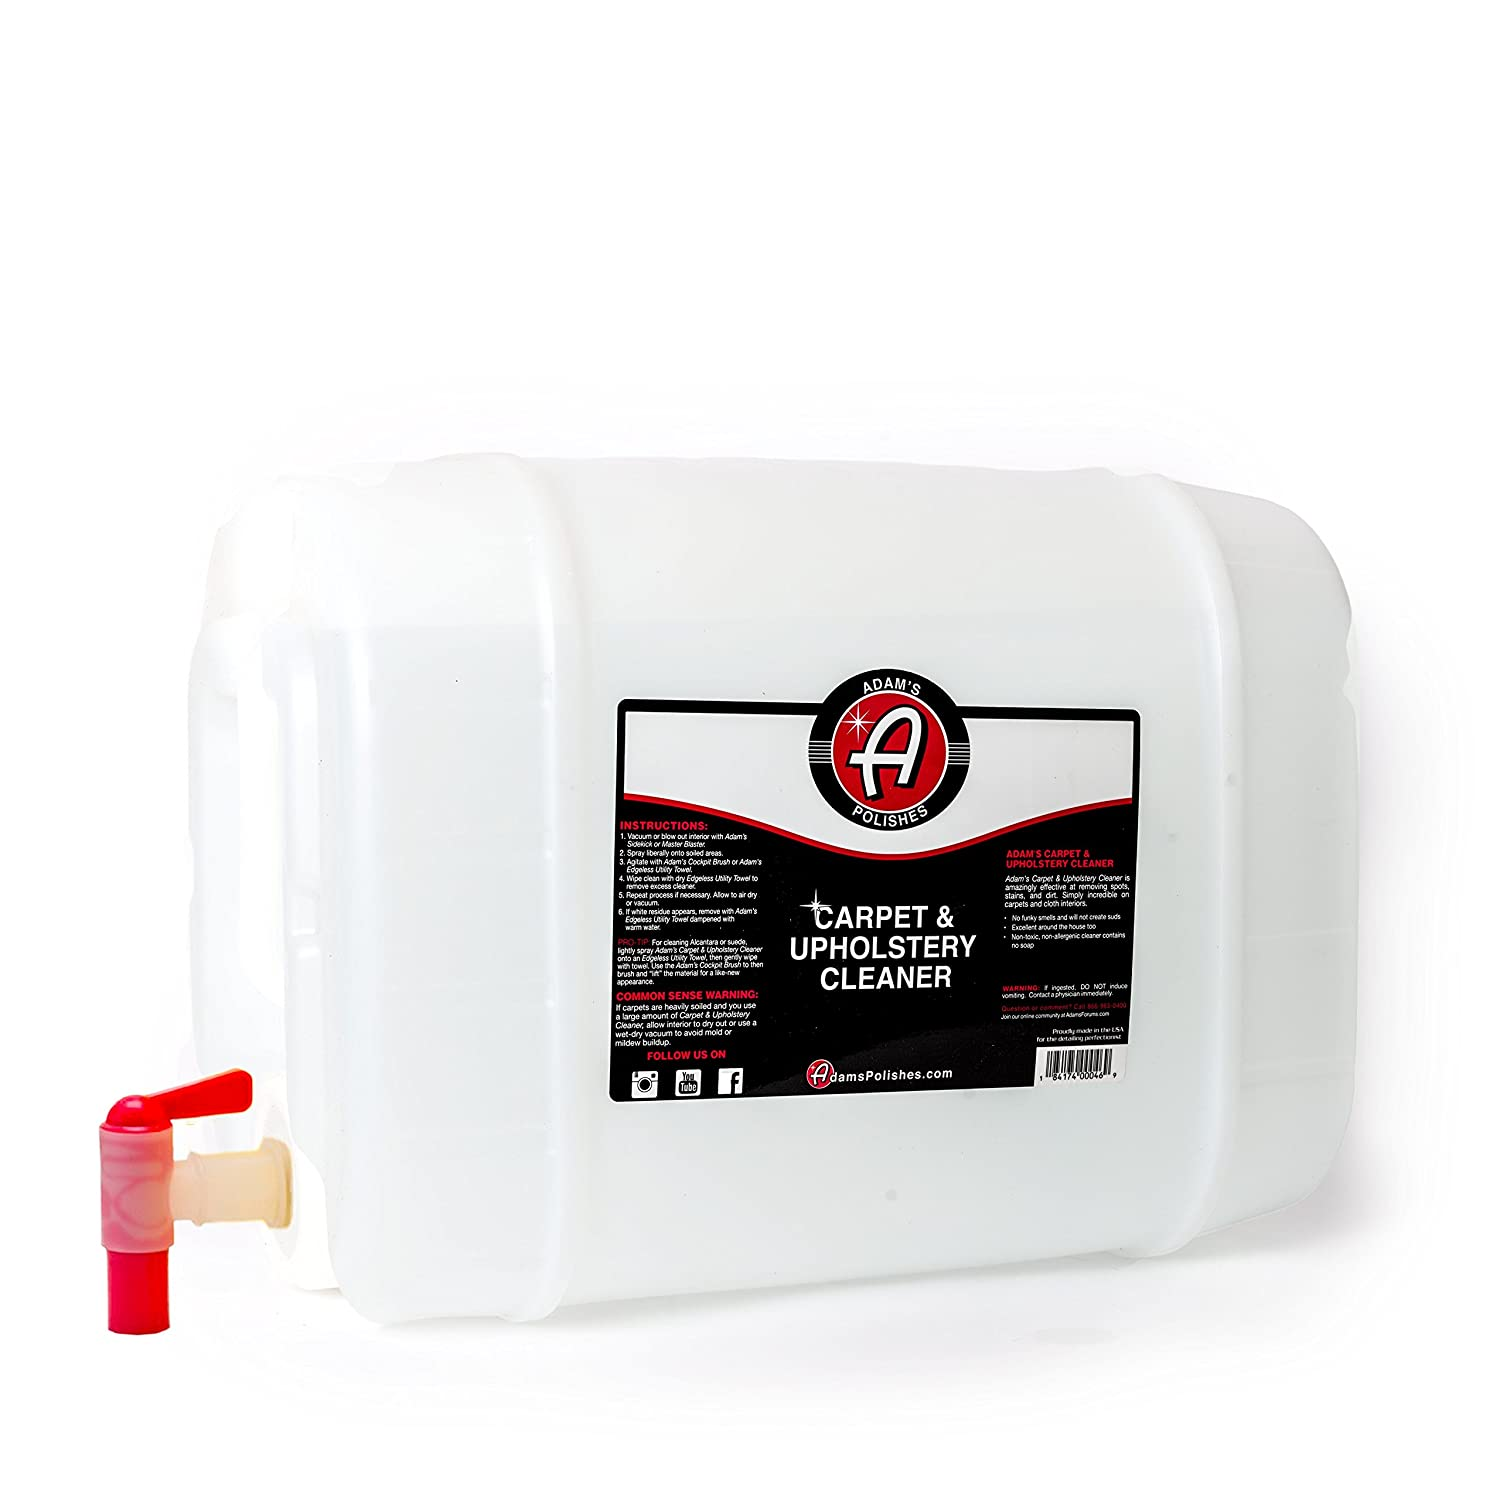 Adam's Carpet & Upholstery Cleaner 16oz - Easy to Use and Effective on Even the Worst Stains - Safe, Non-toxic and Hypoallergenic Adam' s Polishes 4332947738